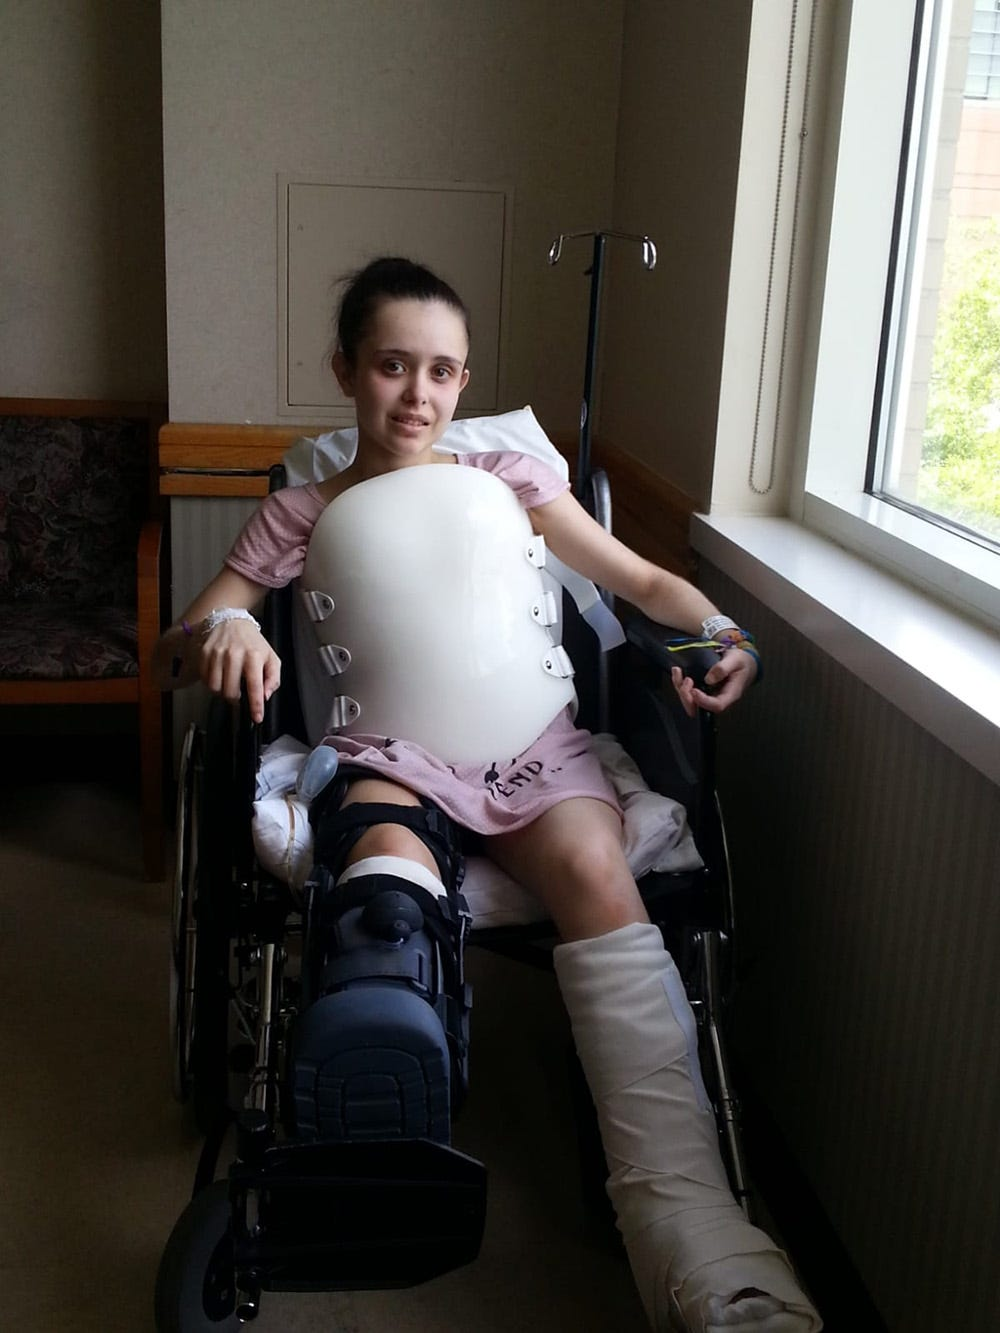 Stefany Neves wear a brace to support her broken back while she recovers at Rhode Island Hospital after the circus accident, which left her with broken bones in most of her body as well as a lacerated liver.